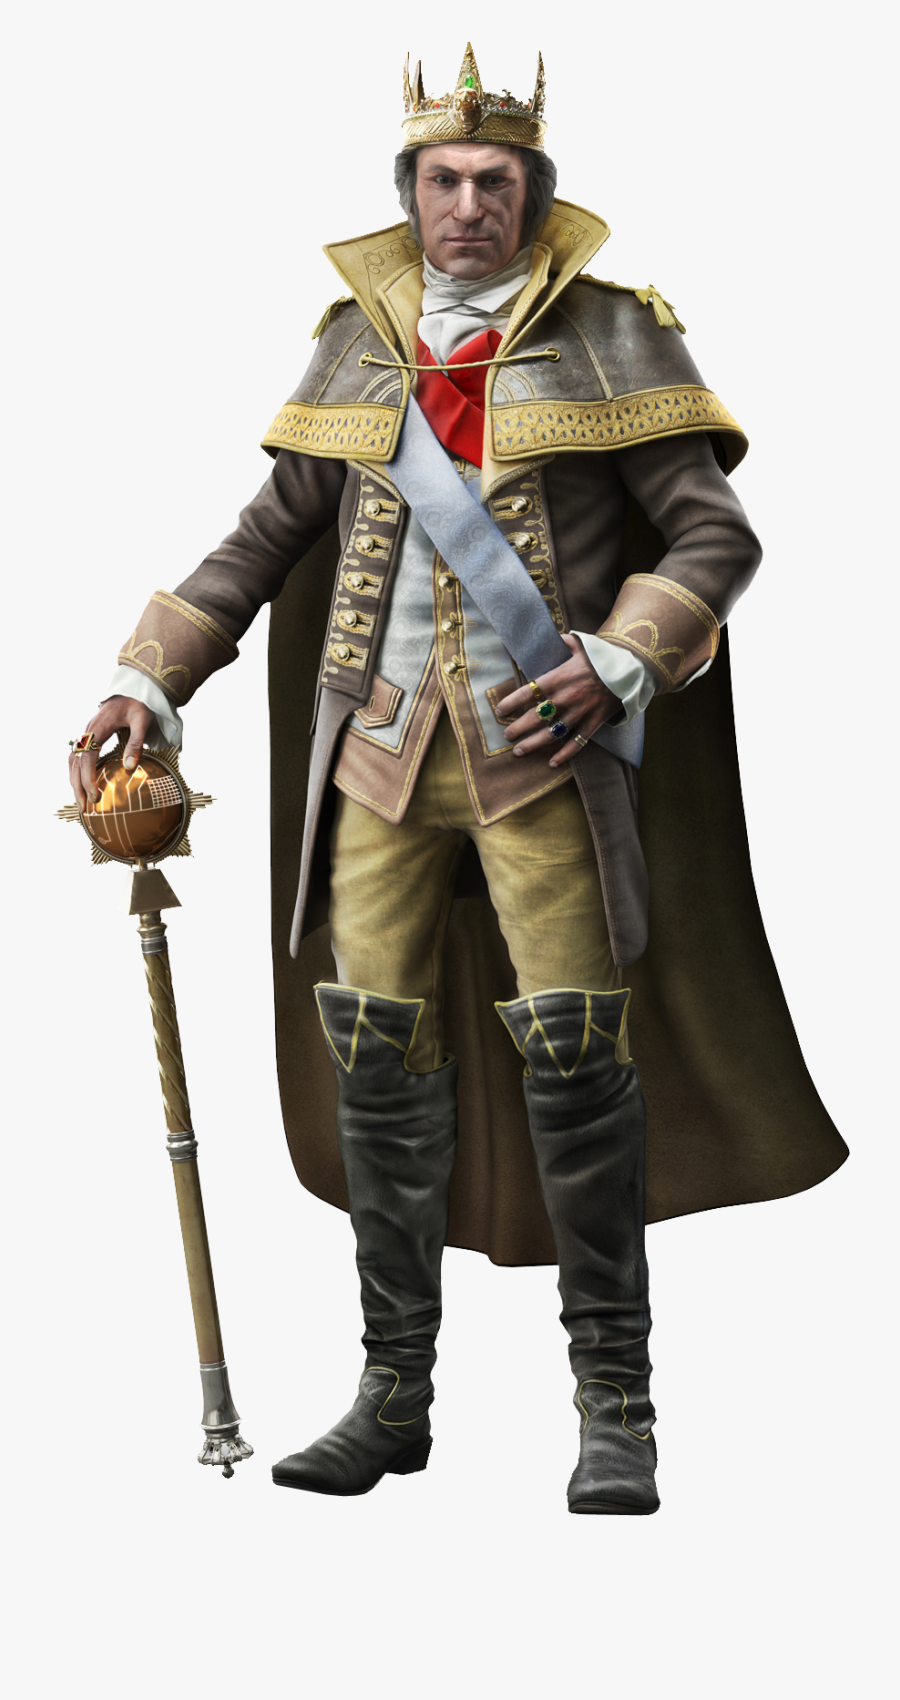 George Washington Png Image With Transparent Background - King George Washington Assassin's Creed, Transparent Clipart